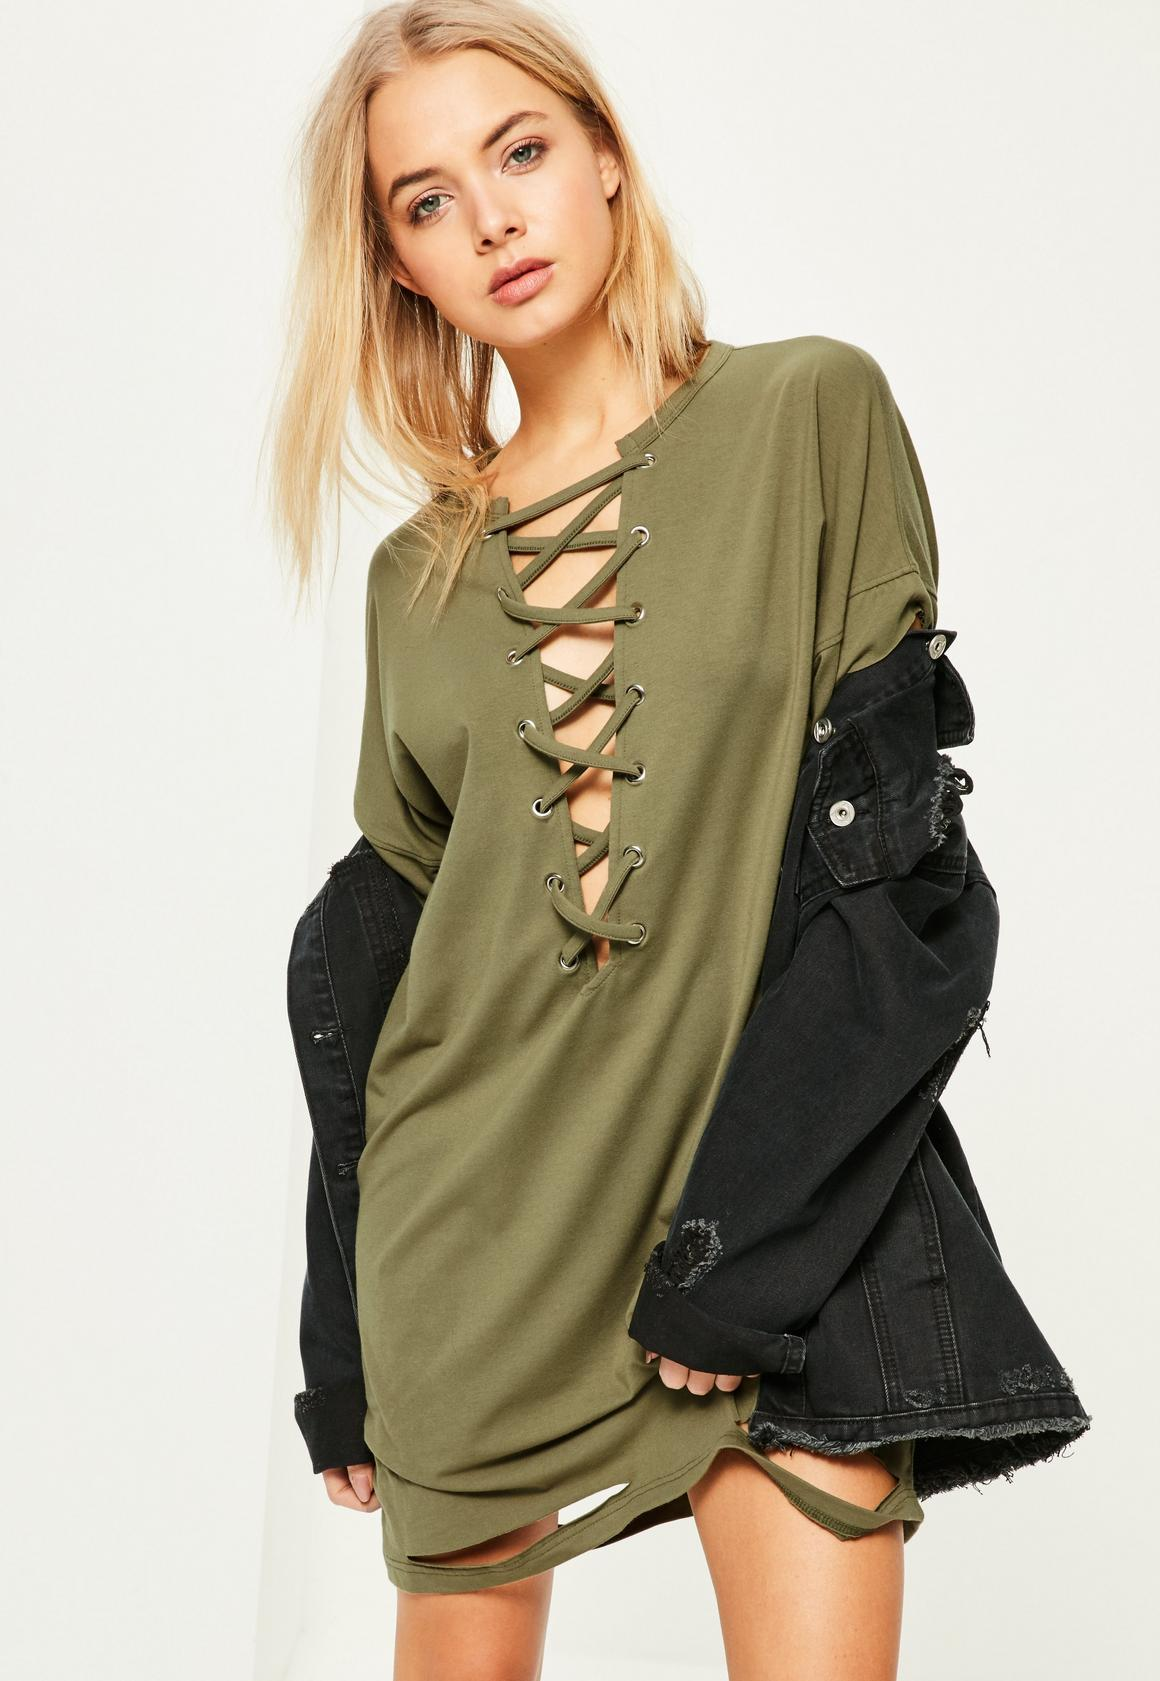 Khaki Lace Up Distressed T Shirt Dress | Missguided